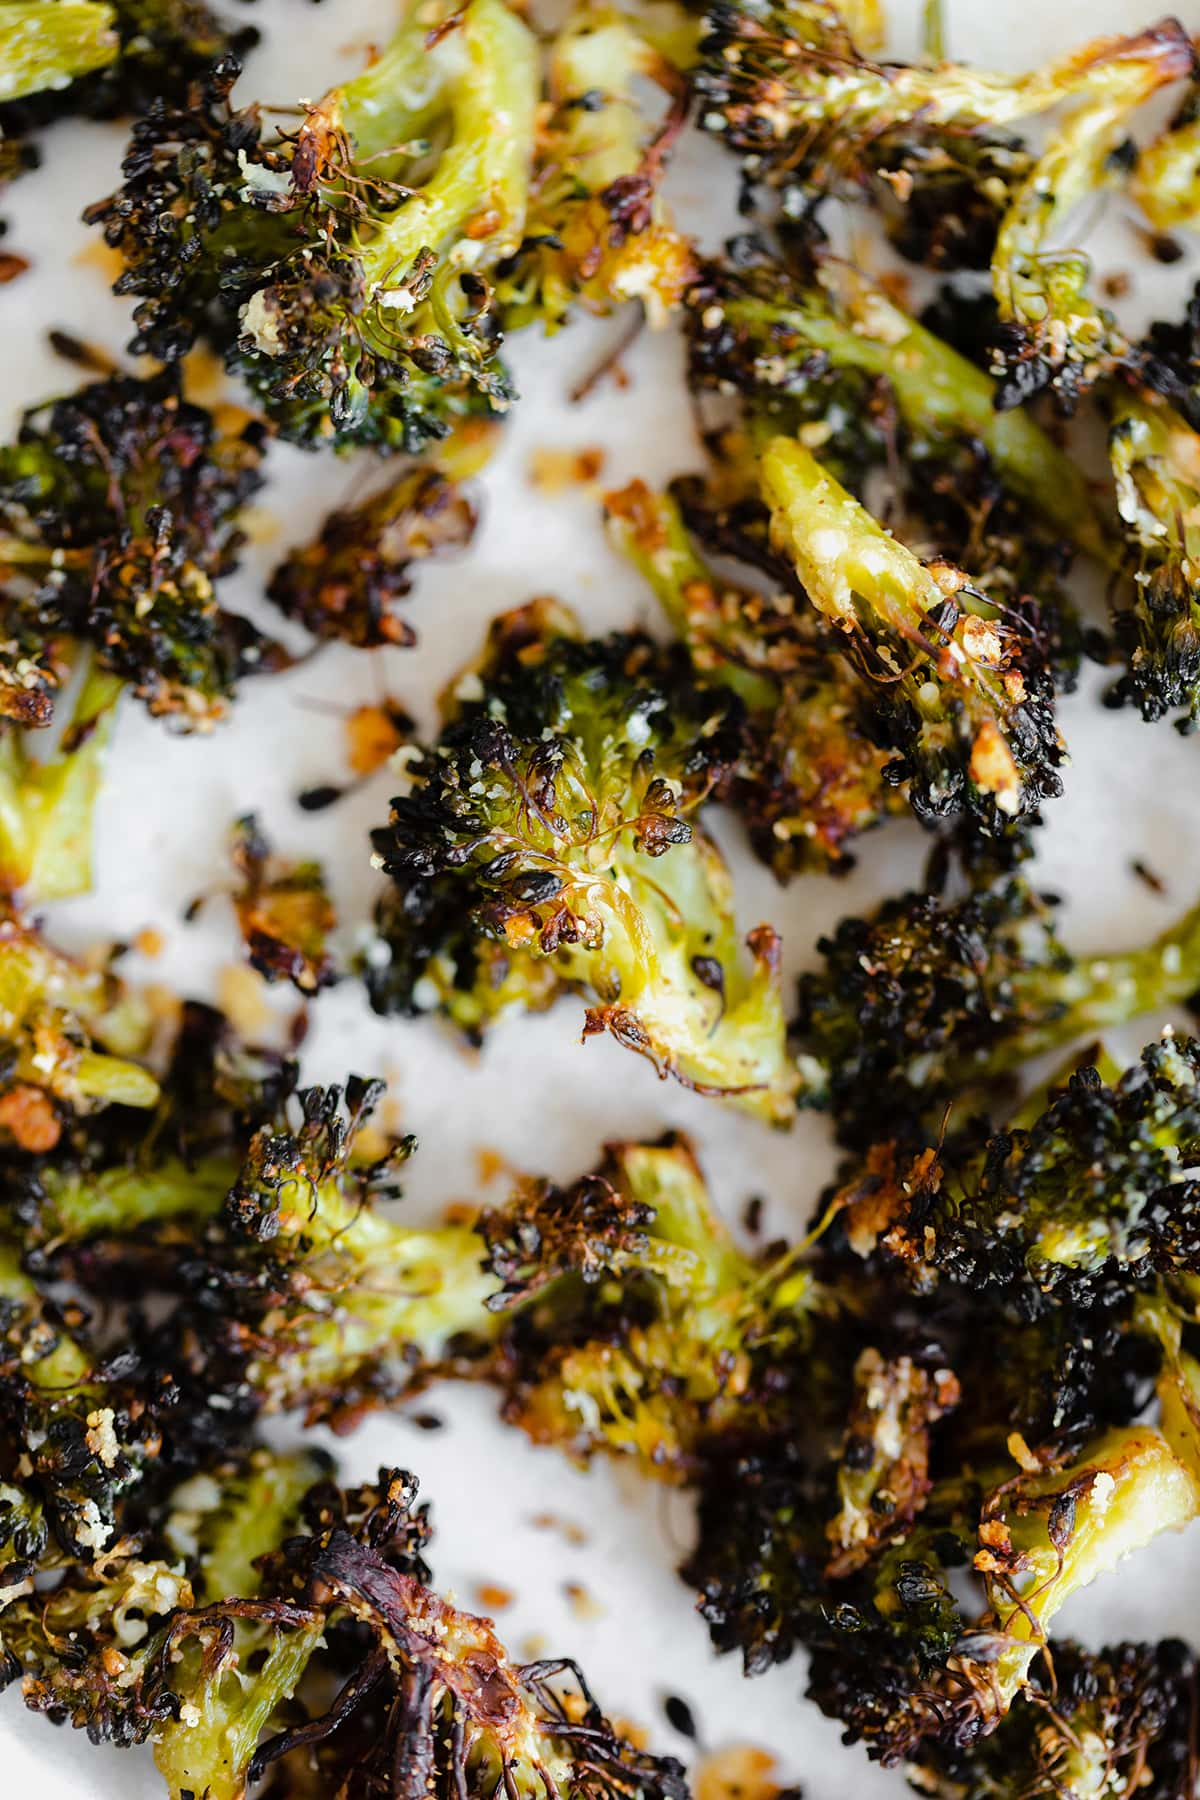 Roasted Cheesy Crispy Broccoli for Cream of Broccoli Soup with Roasted Broccoli Croutons